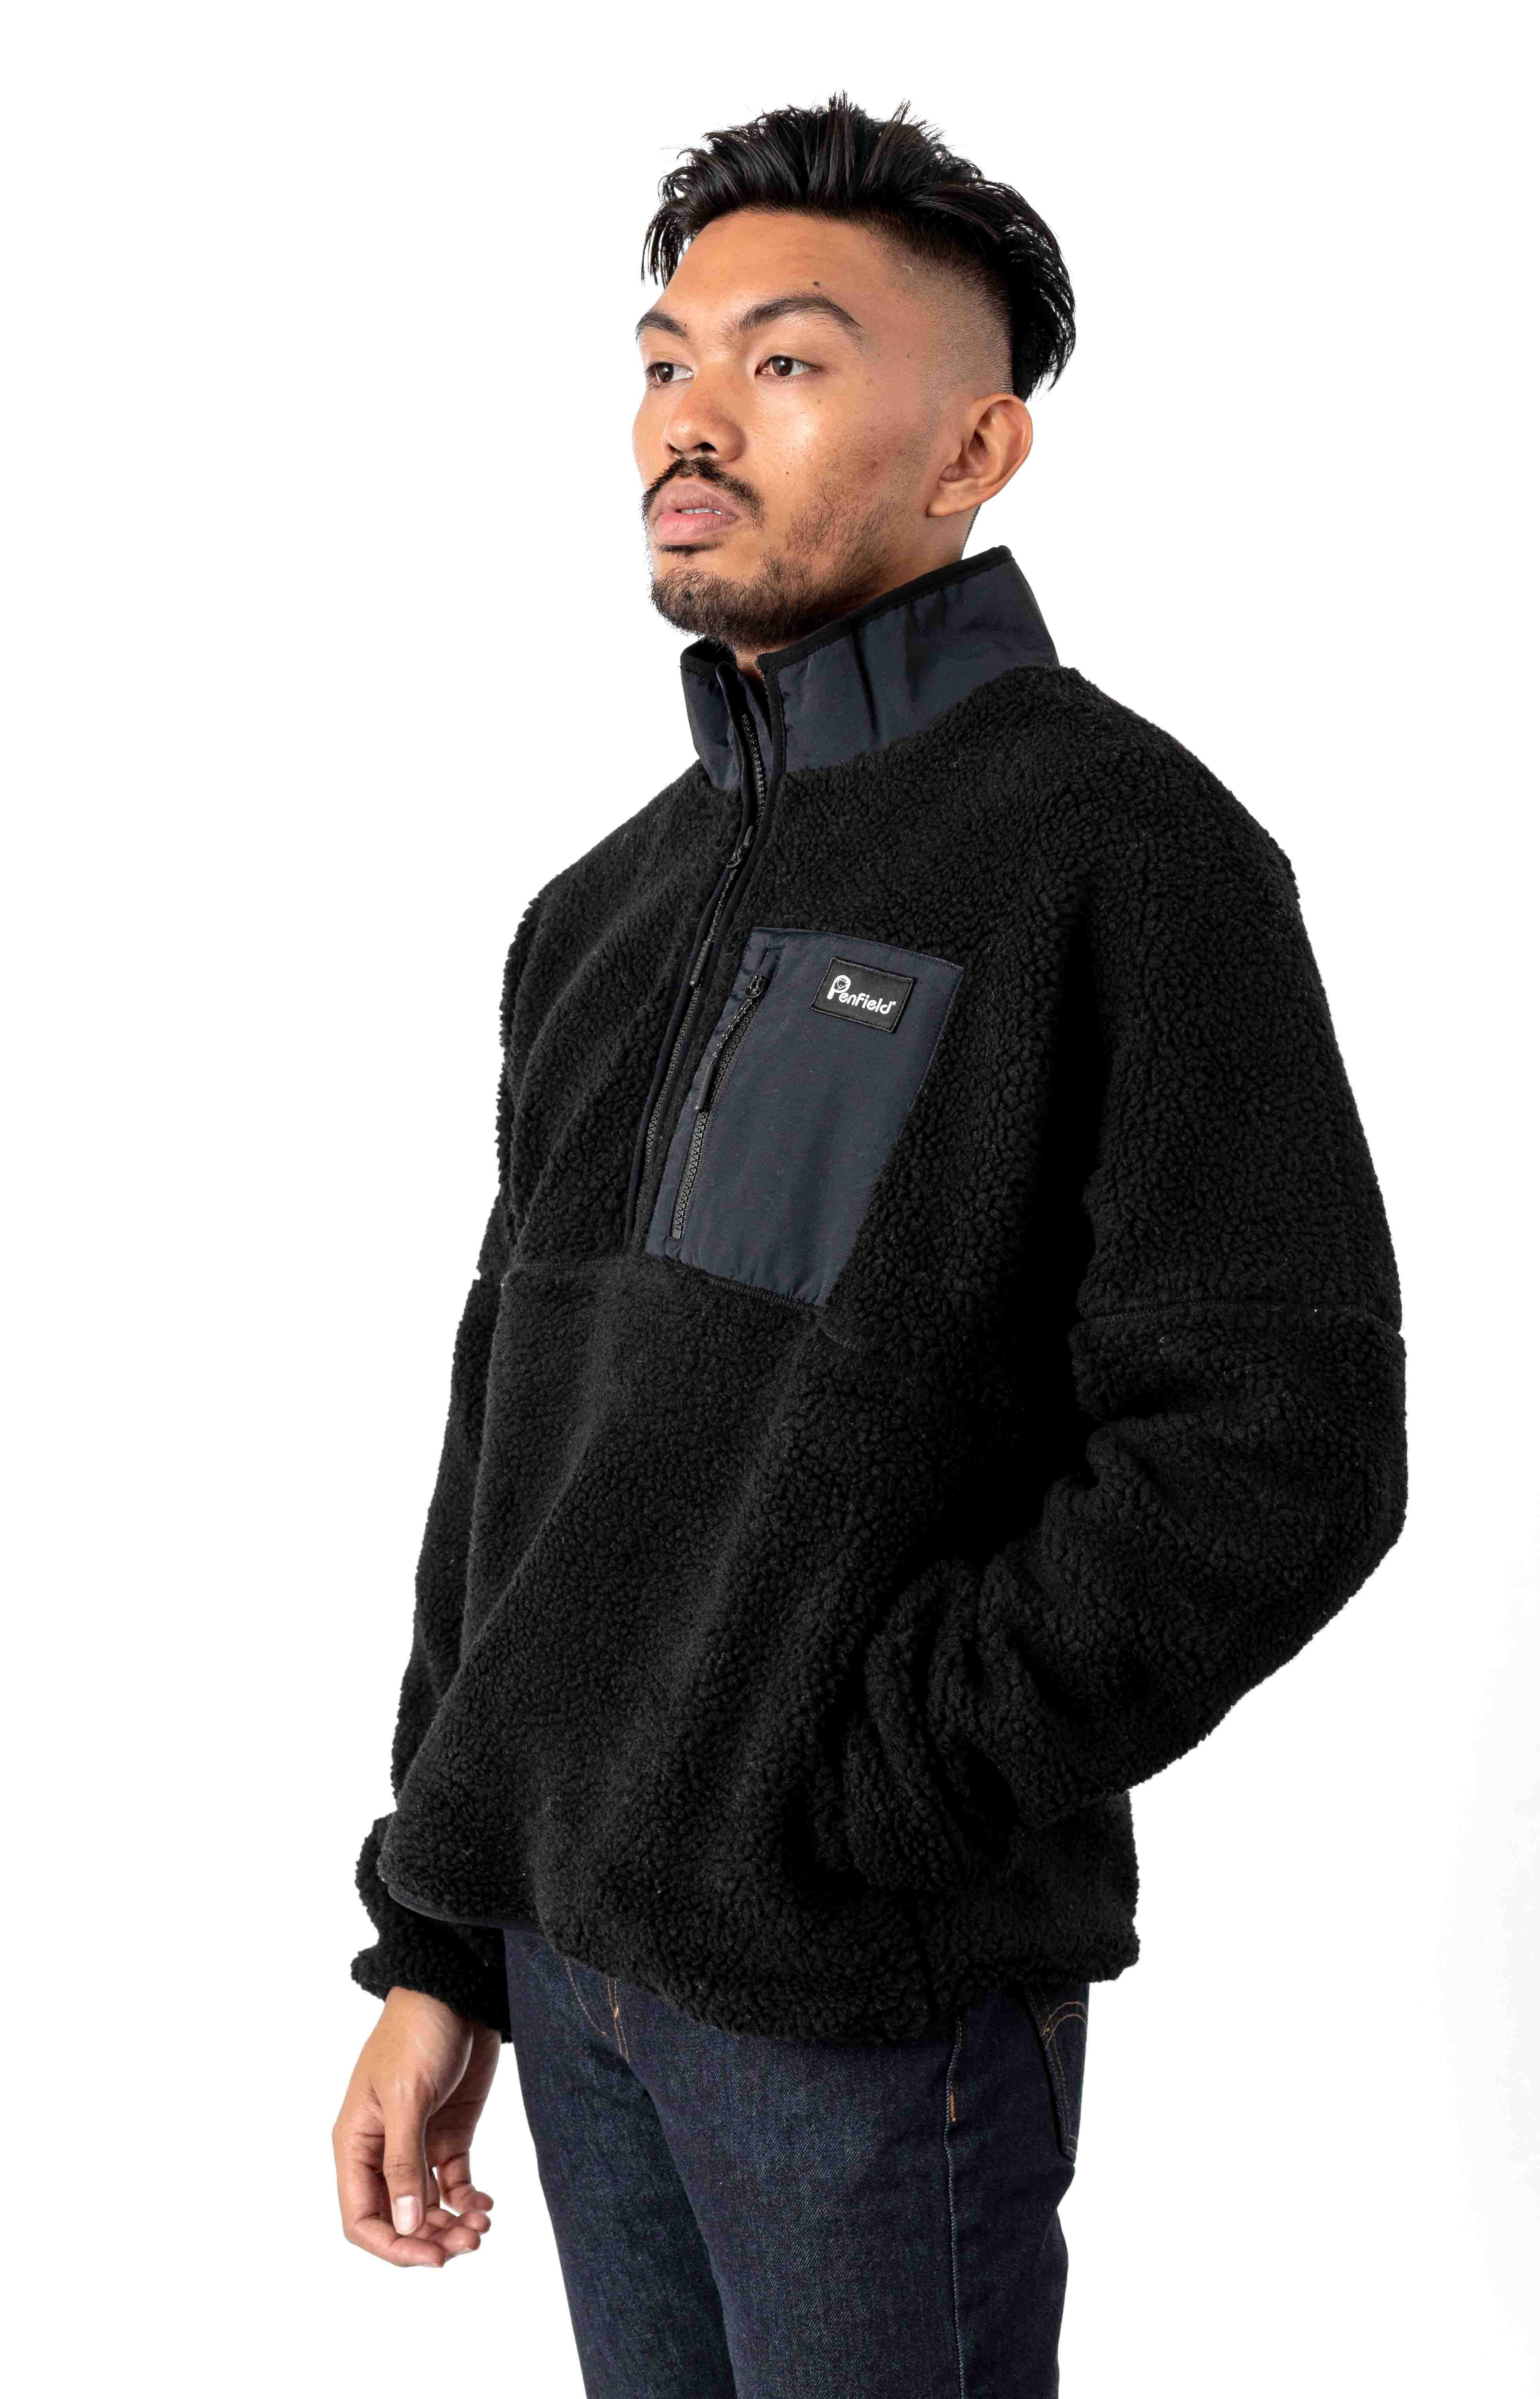 Medford Fleece - Black 2